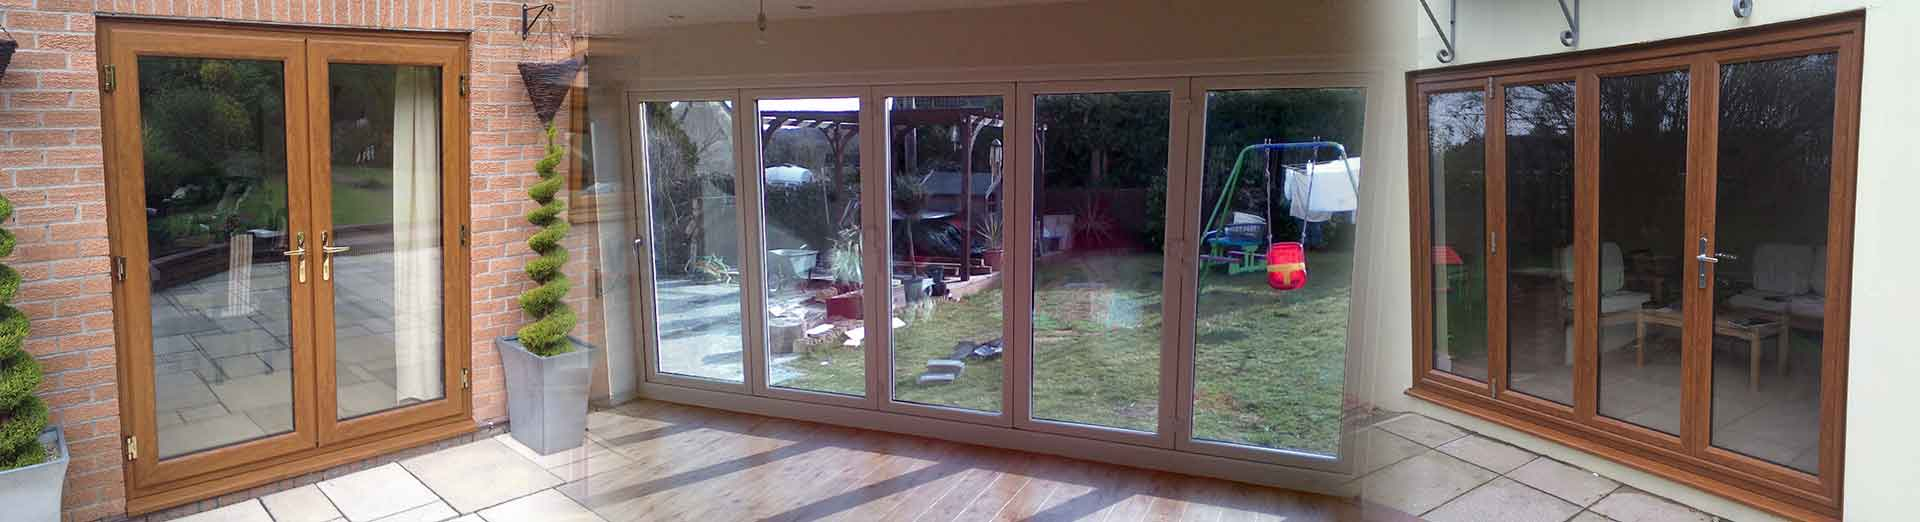 Bifold and patio doors